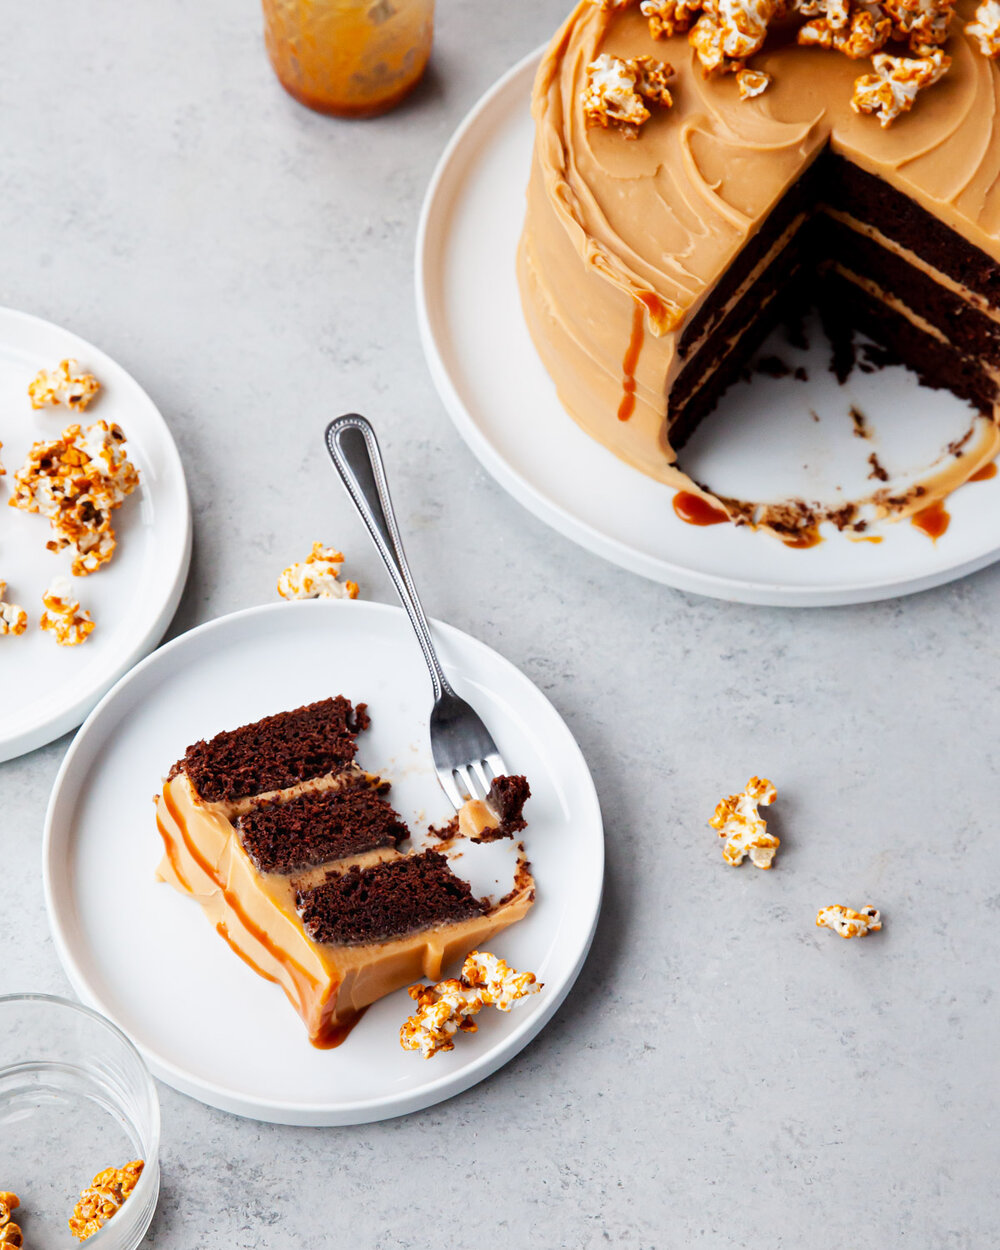 Chocolate Stout Cake with Caramel Buttercream